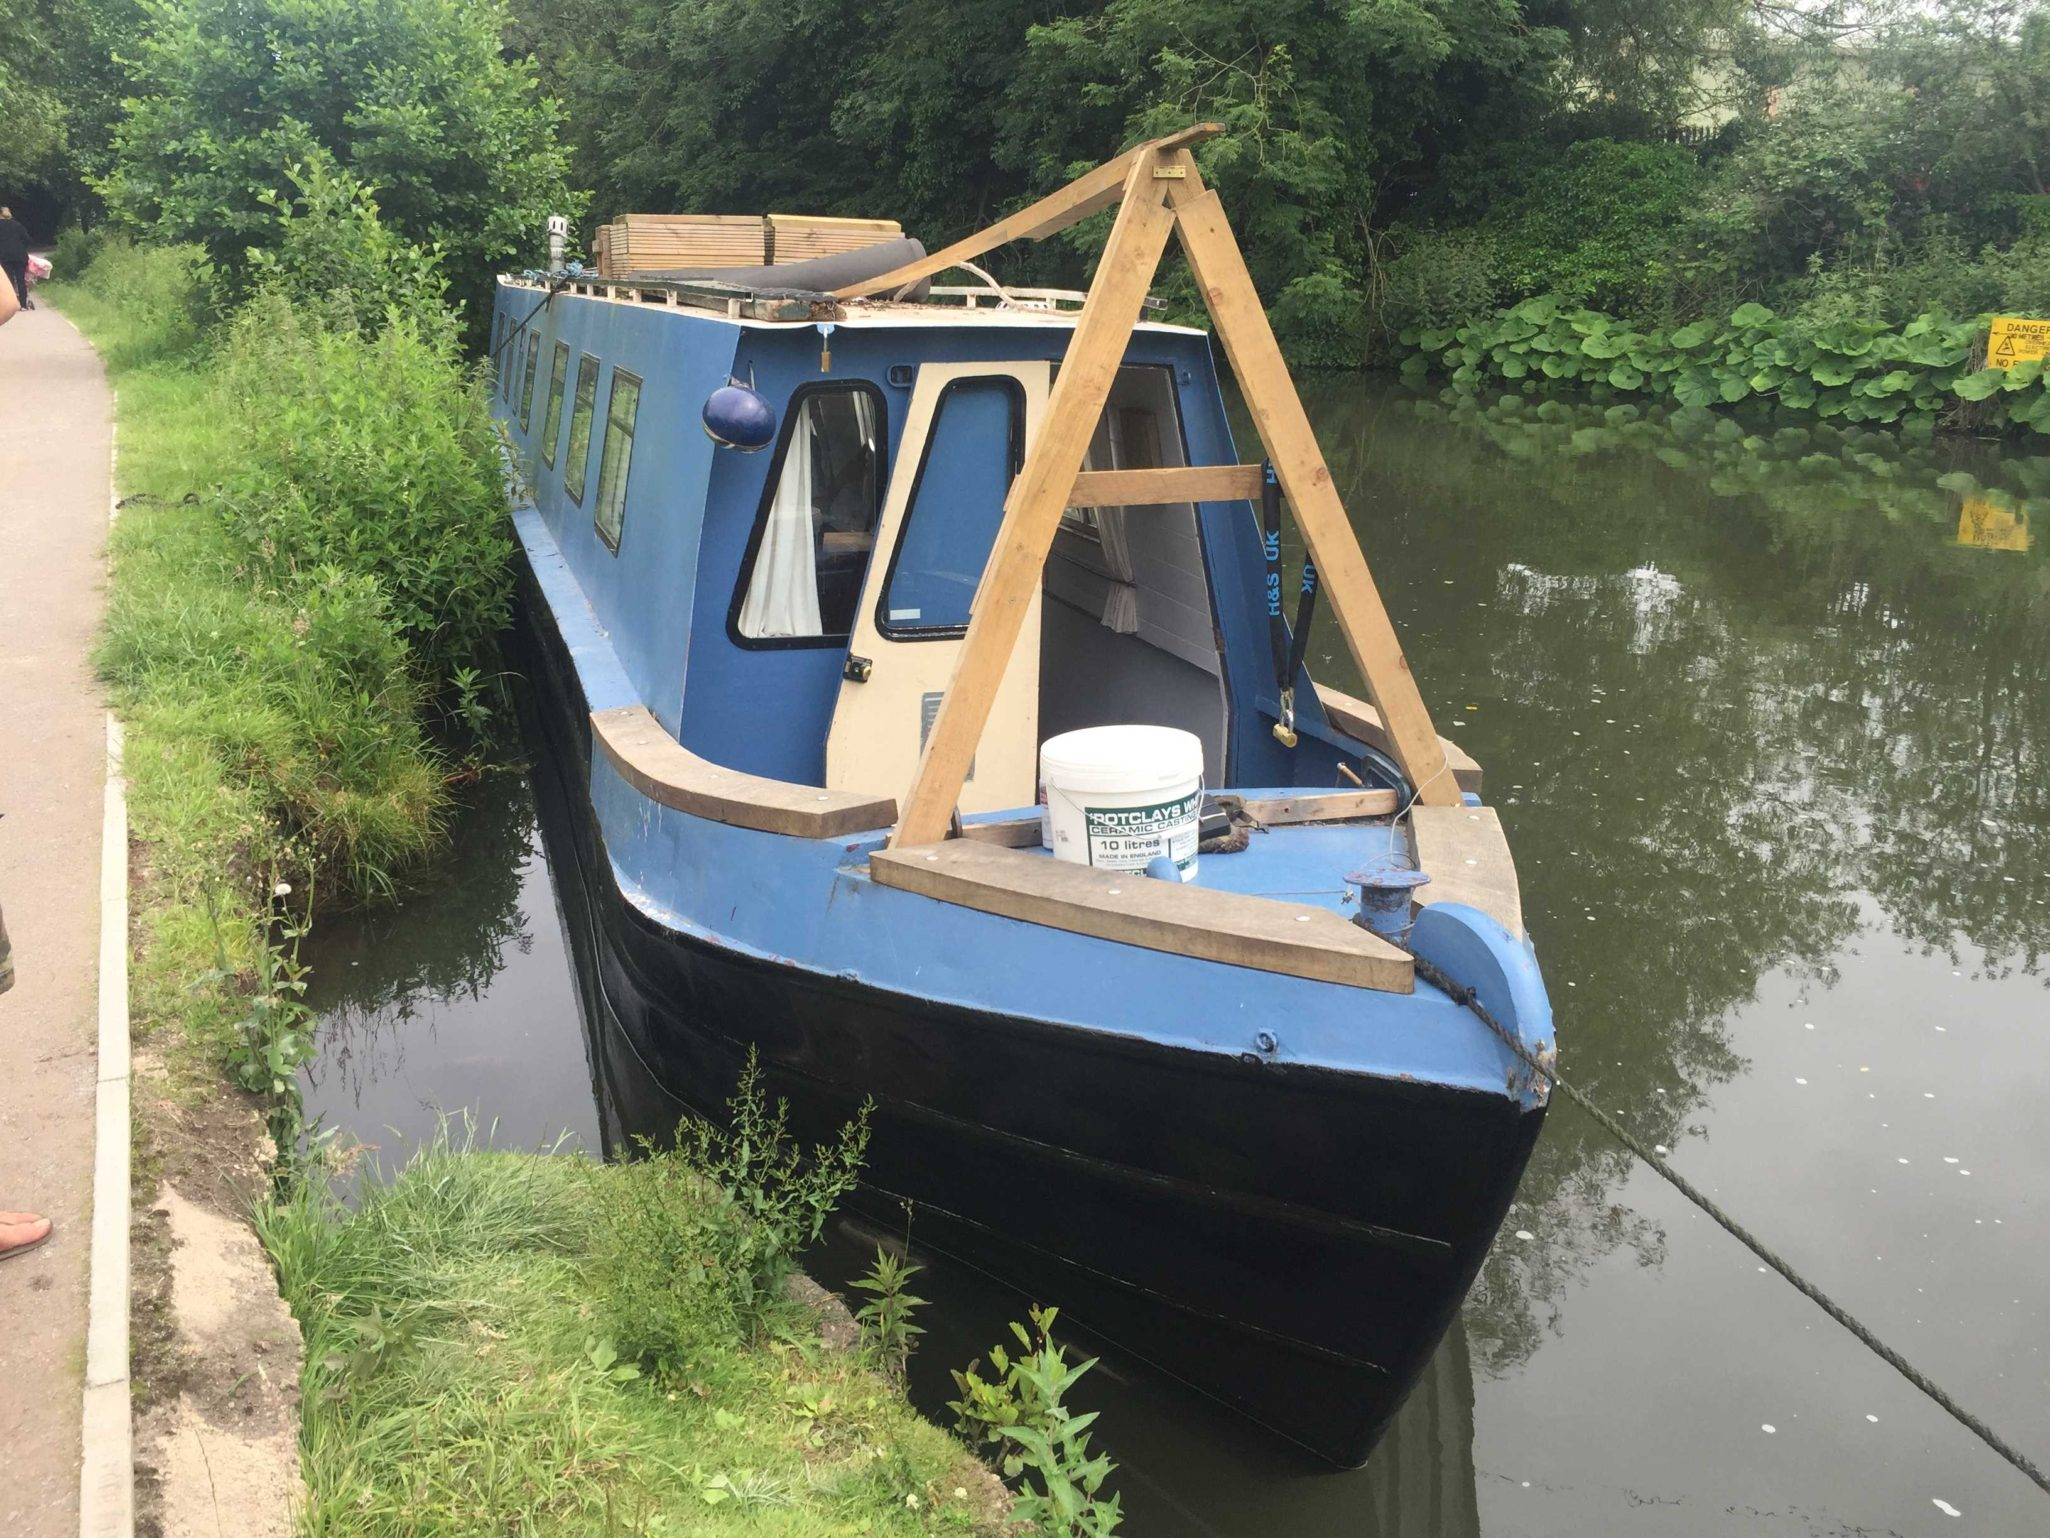 Boatbreakers News - Boatbreakers Project Boats For Sale